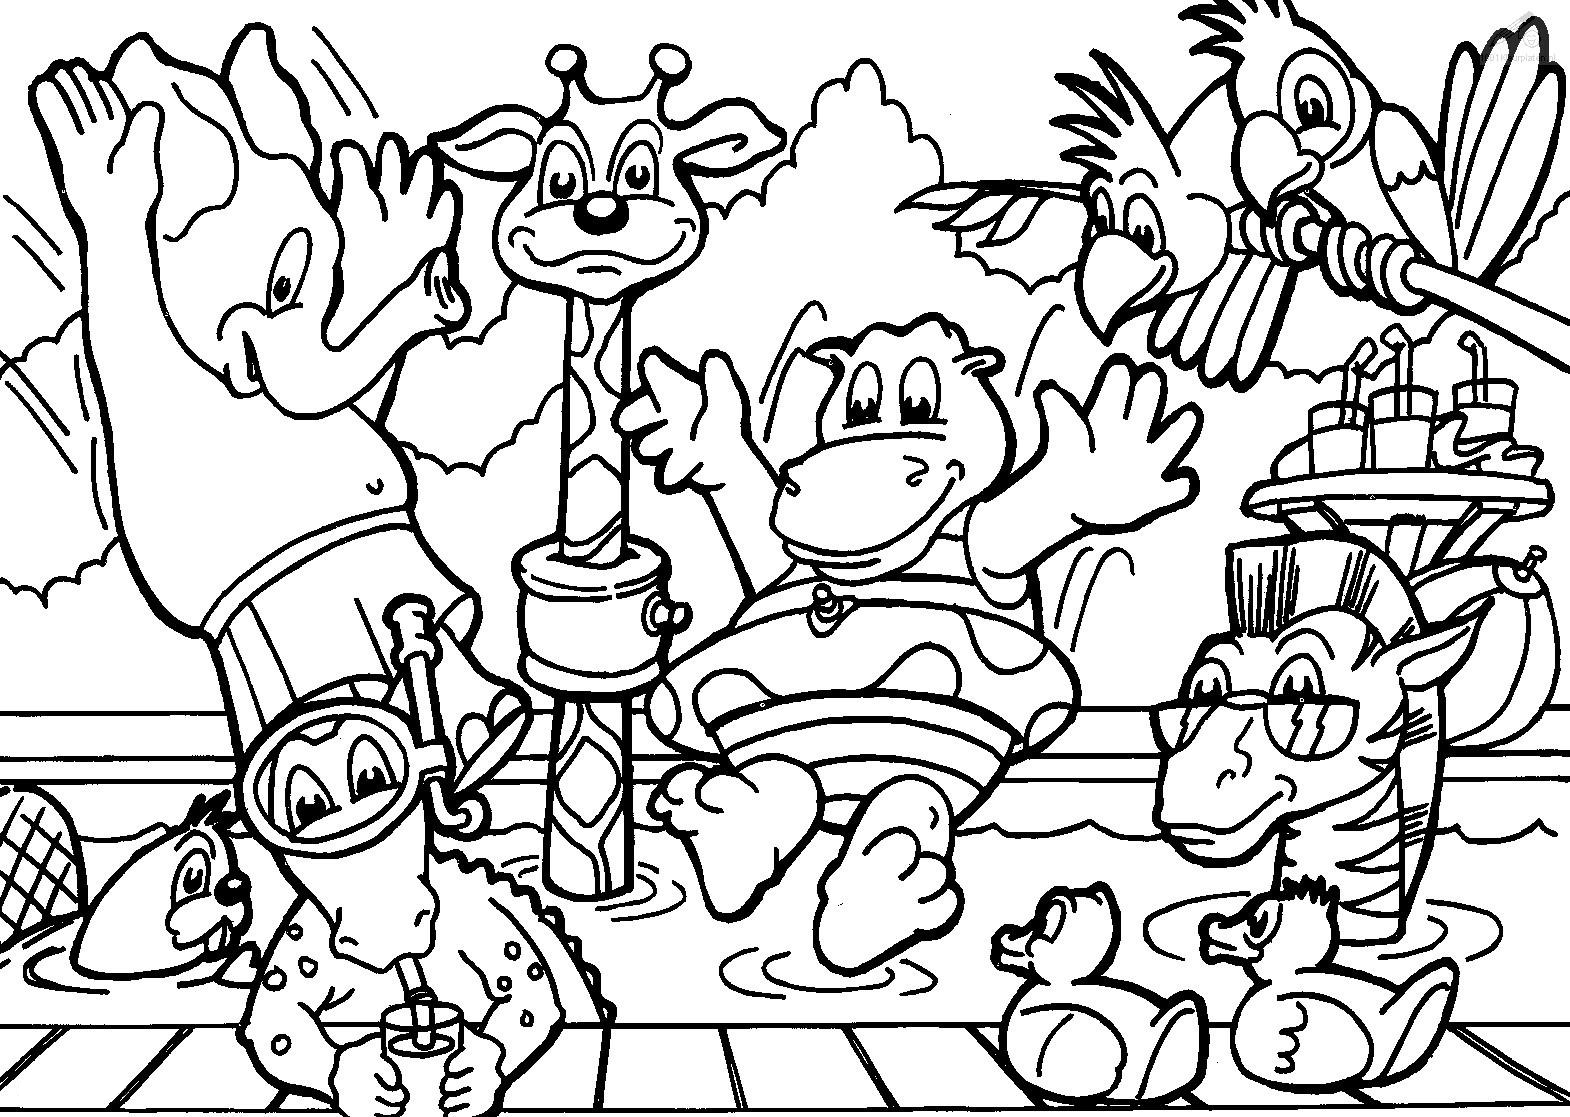 wild animals coloring pages introduce kids wild animals using animals coloring coloring pages animals wild